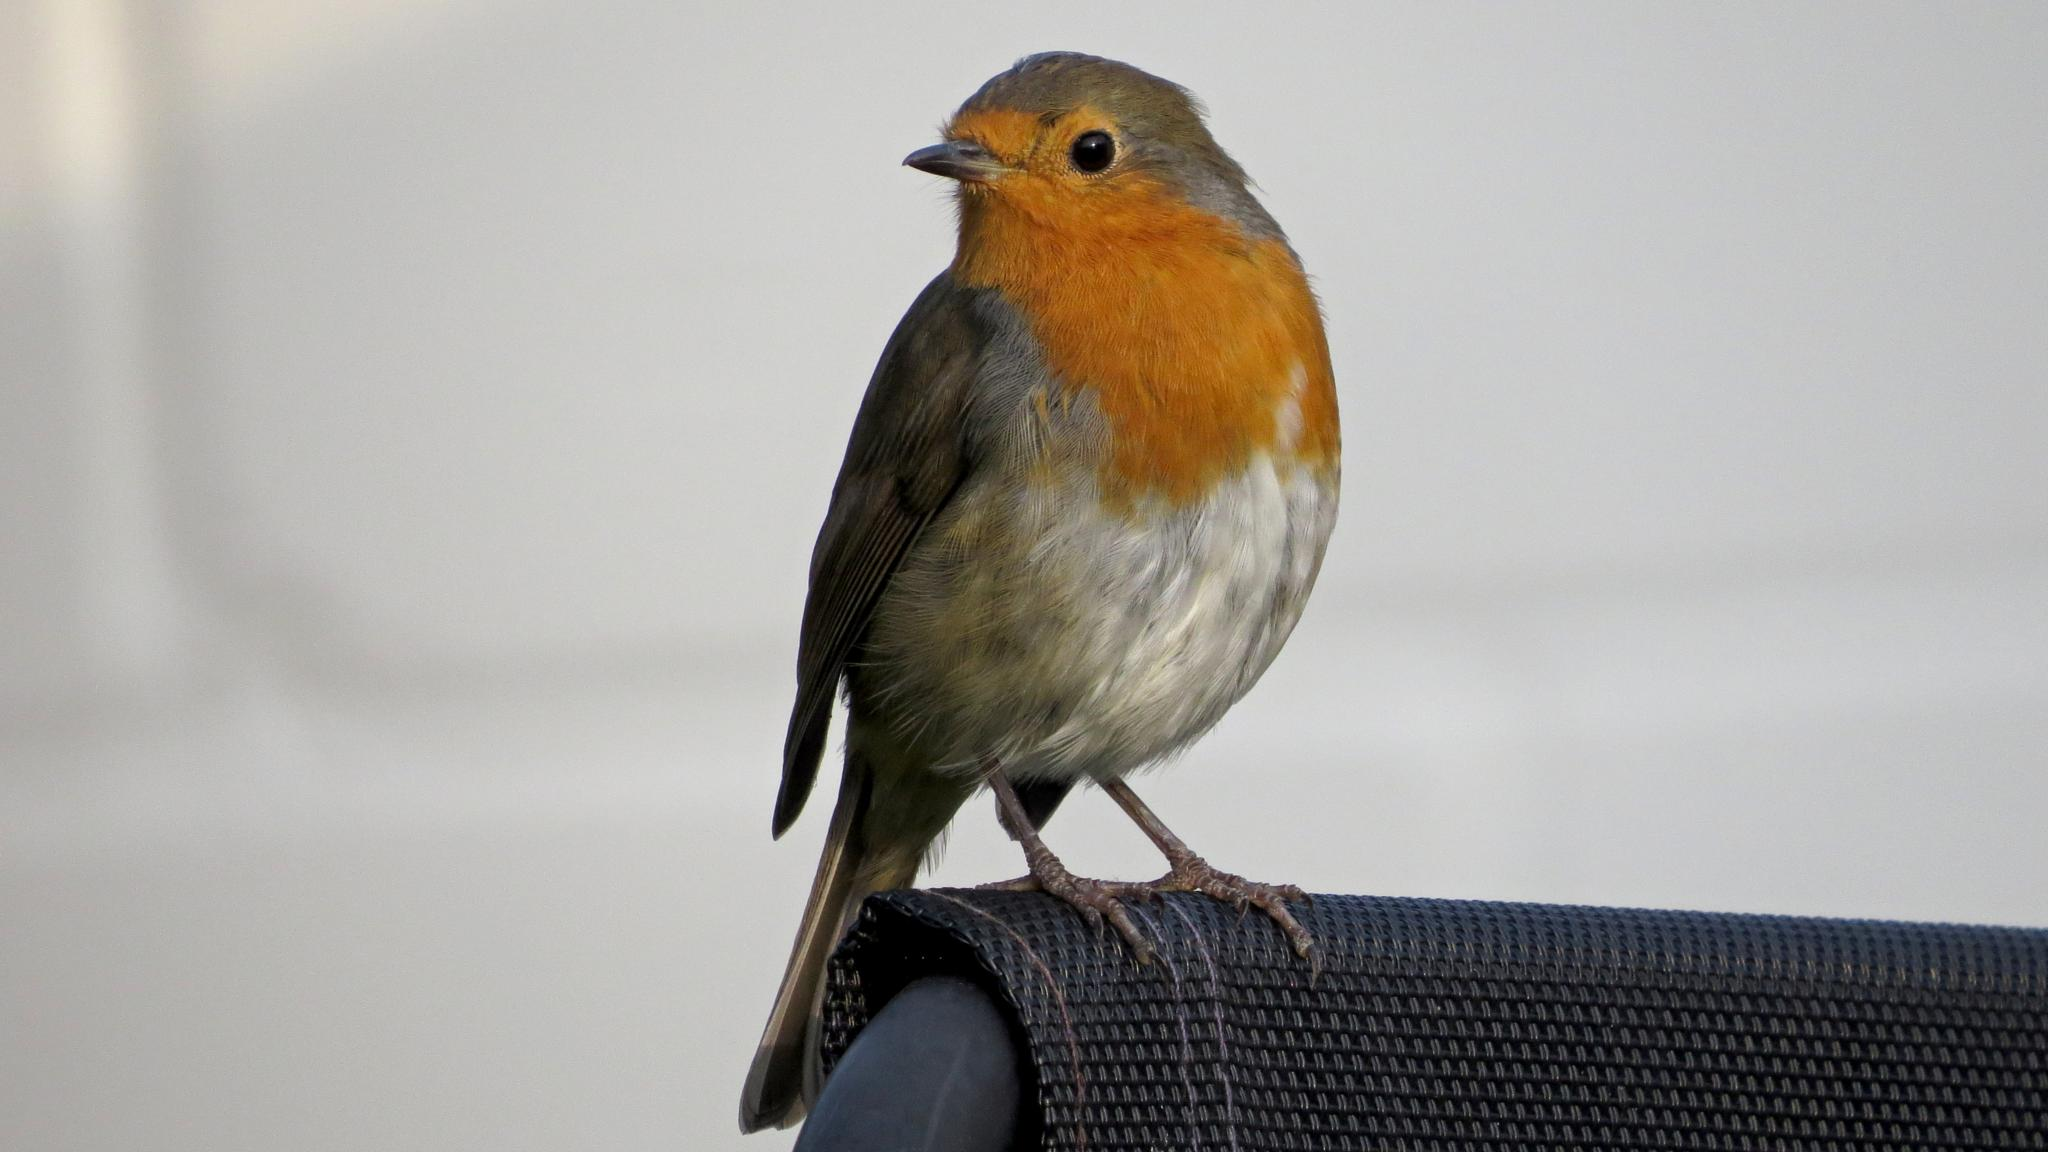 Robin on my sun lounger posing away for his little photo by June